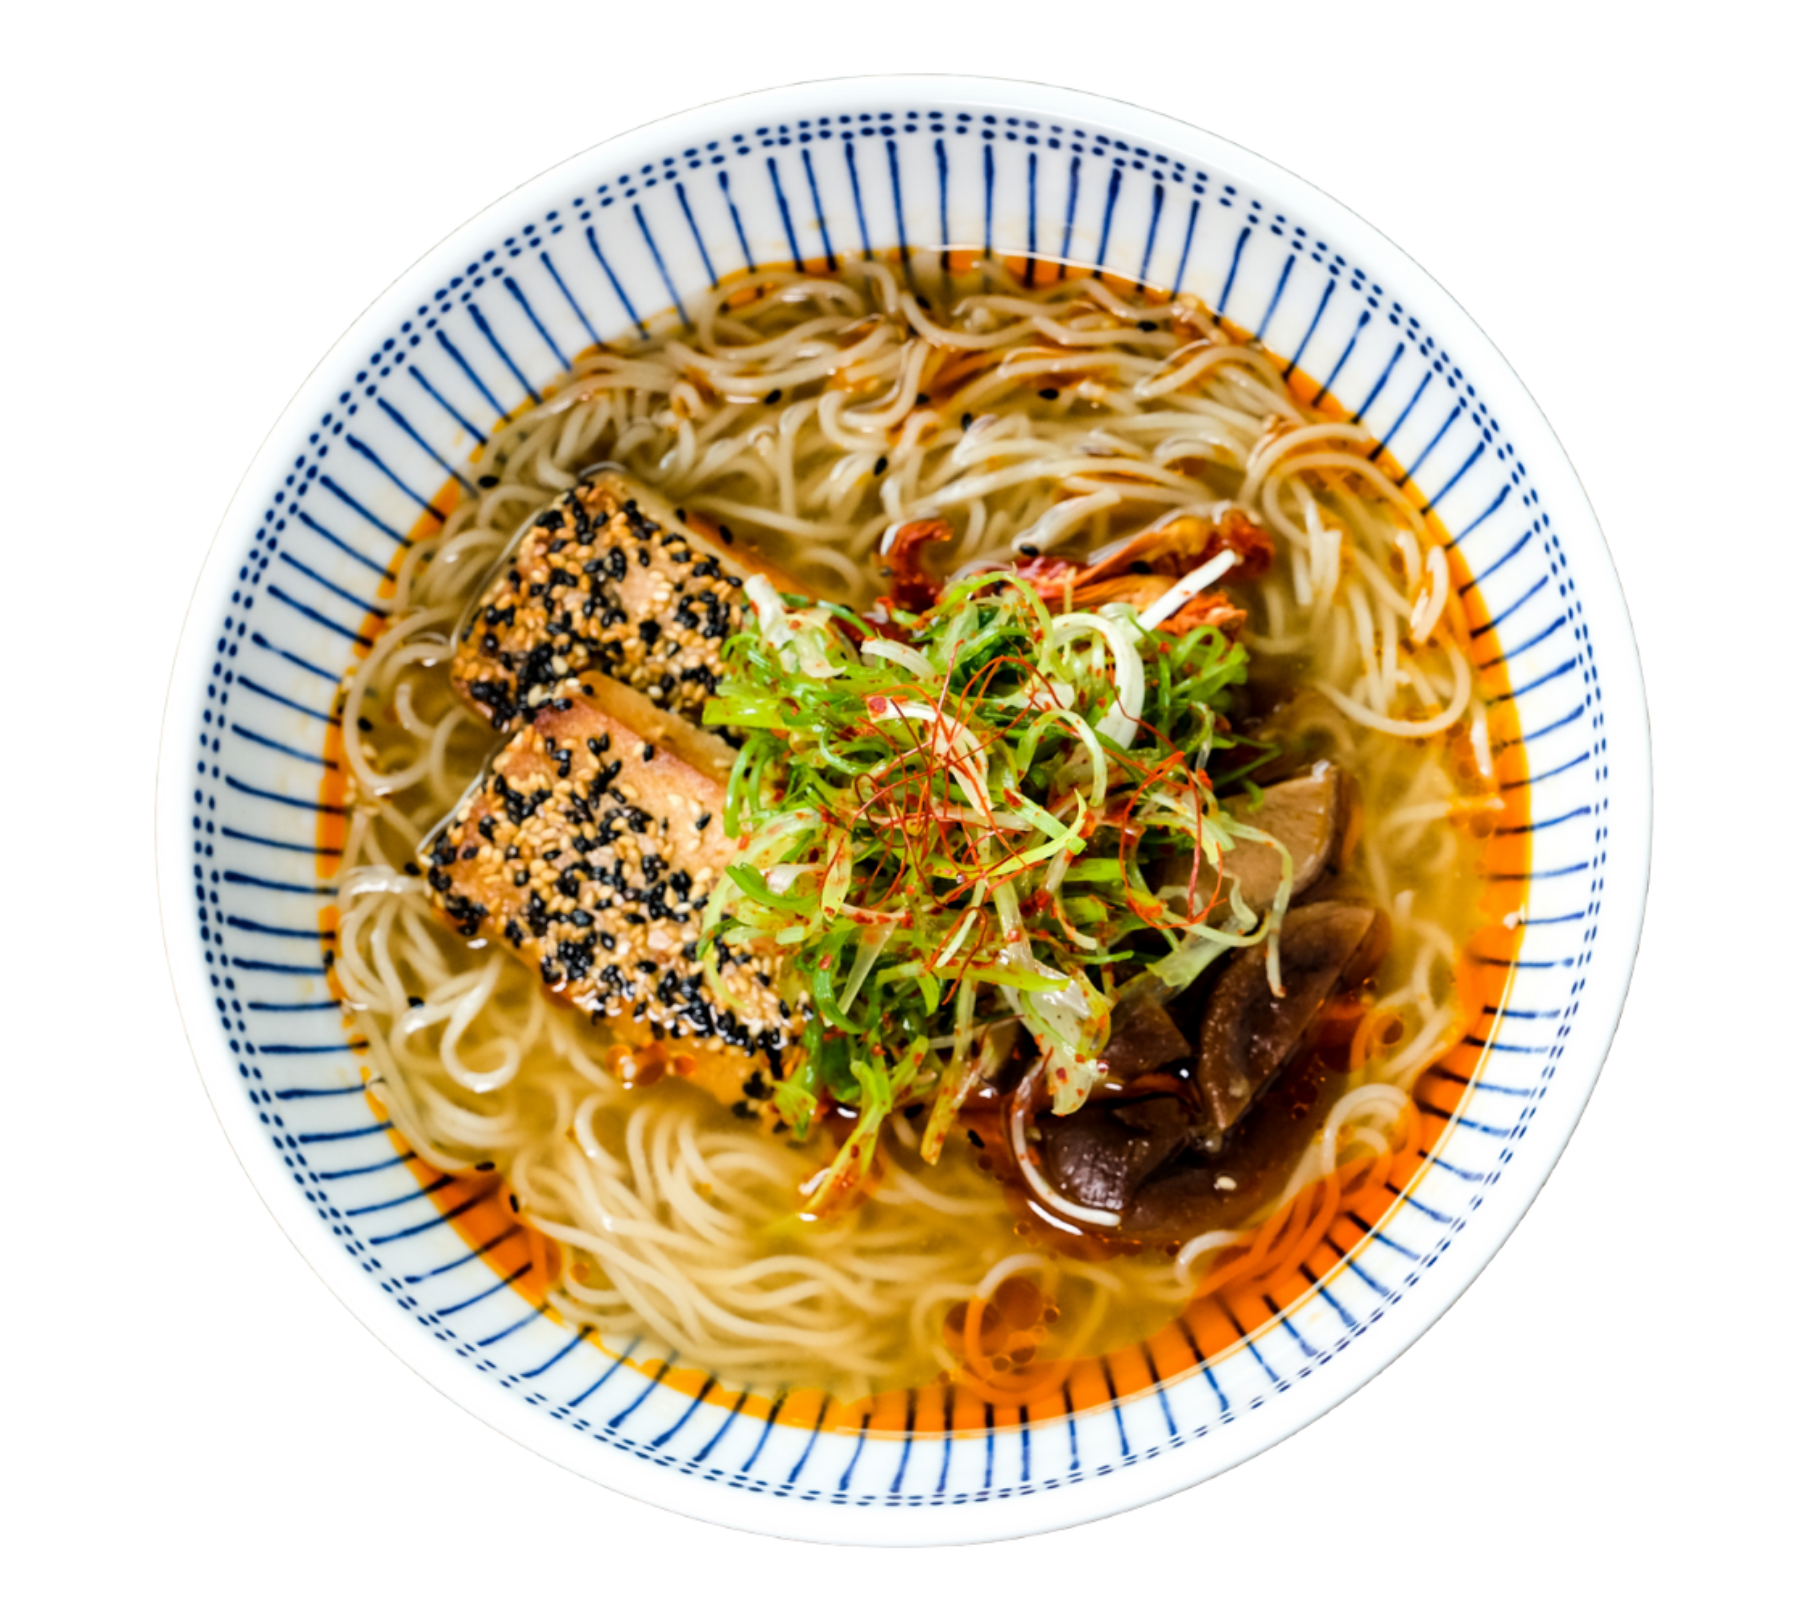 Copy of Copy of Copy of A hearty and satisfying ramen inspired by the Sapporo region of Japan, featuring miso chicken broth and pork chashu.